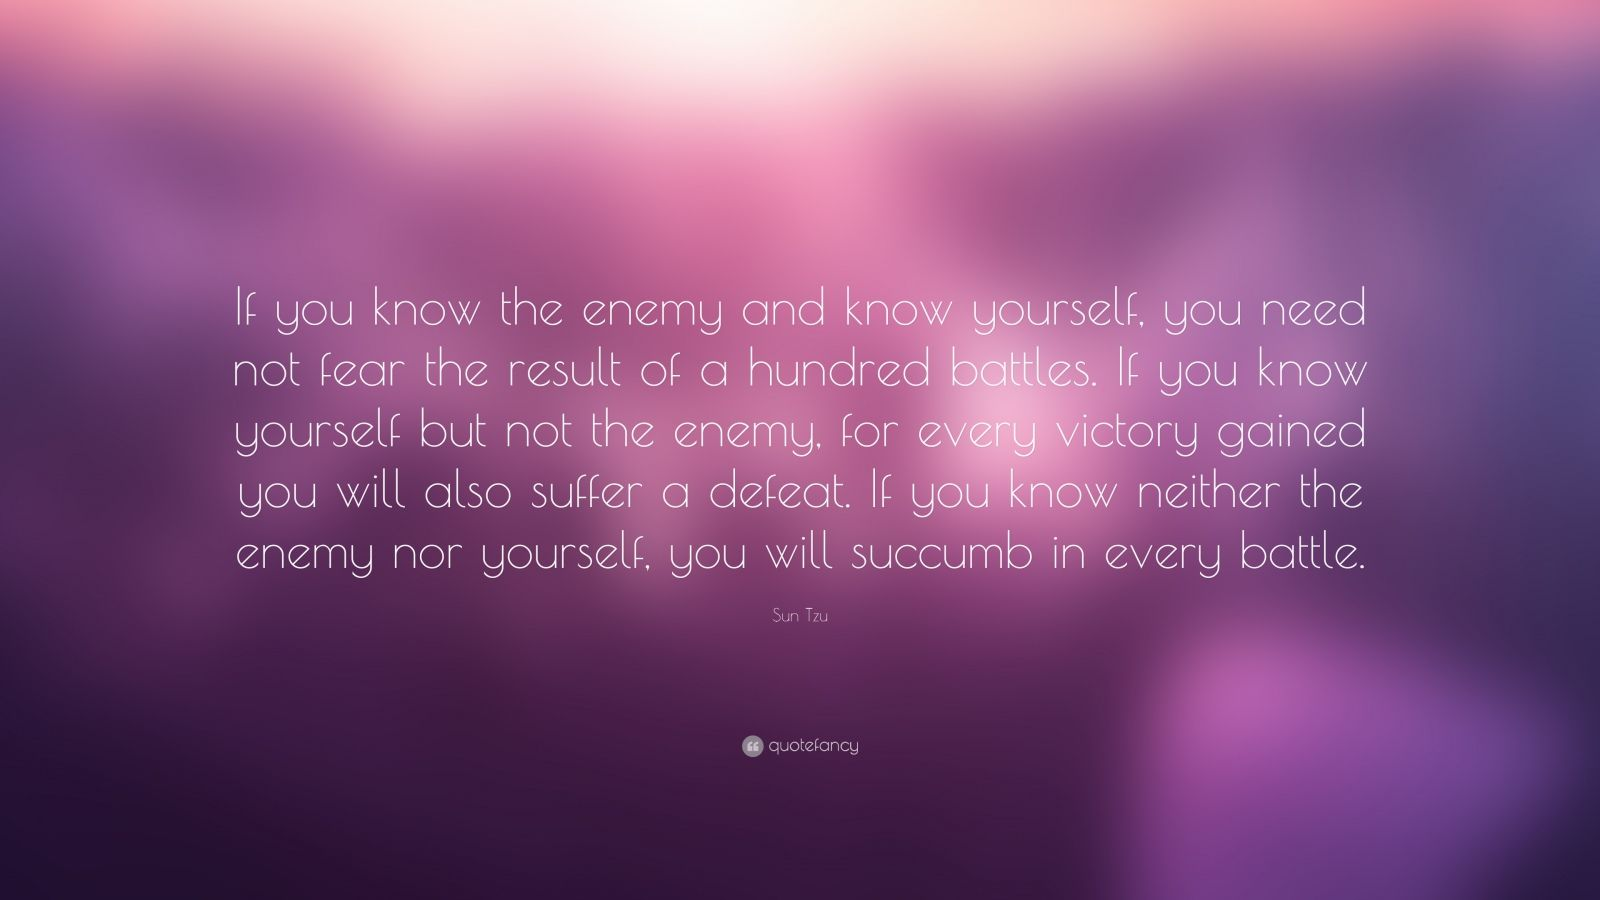 Motivational Life Quotes Wallpapers Sun Tzu Quote If You Know The Enemy And Know Yourself